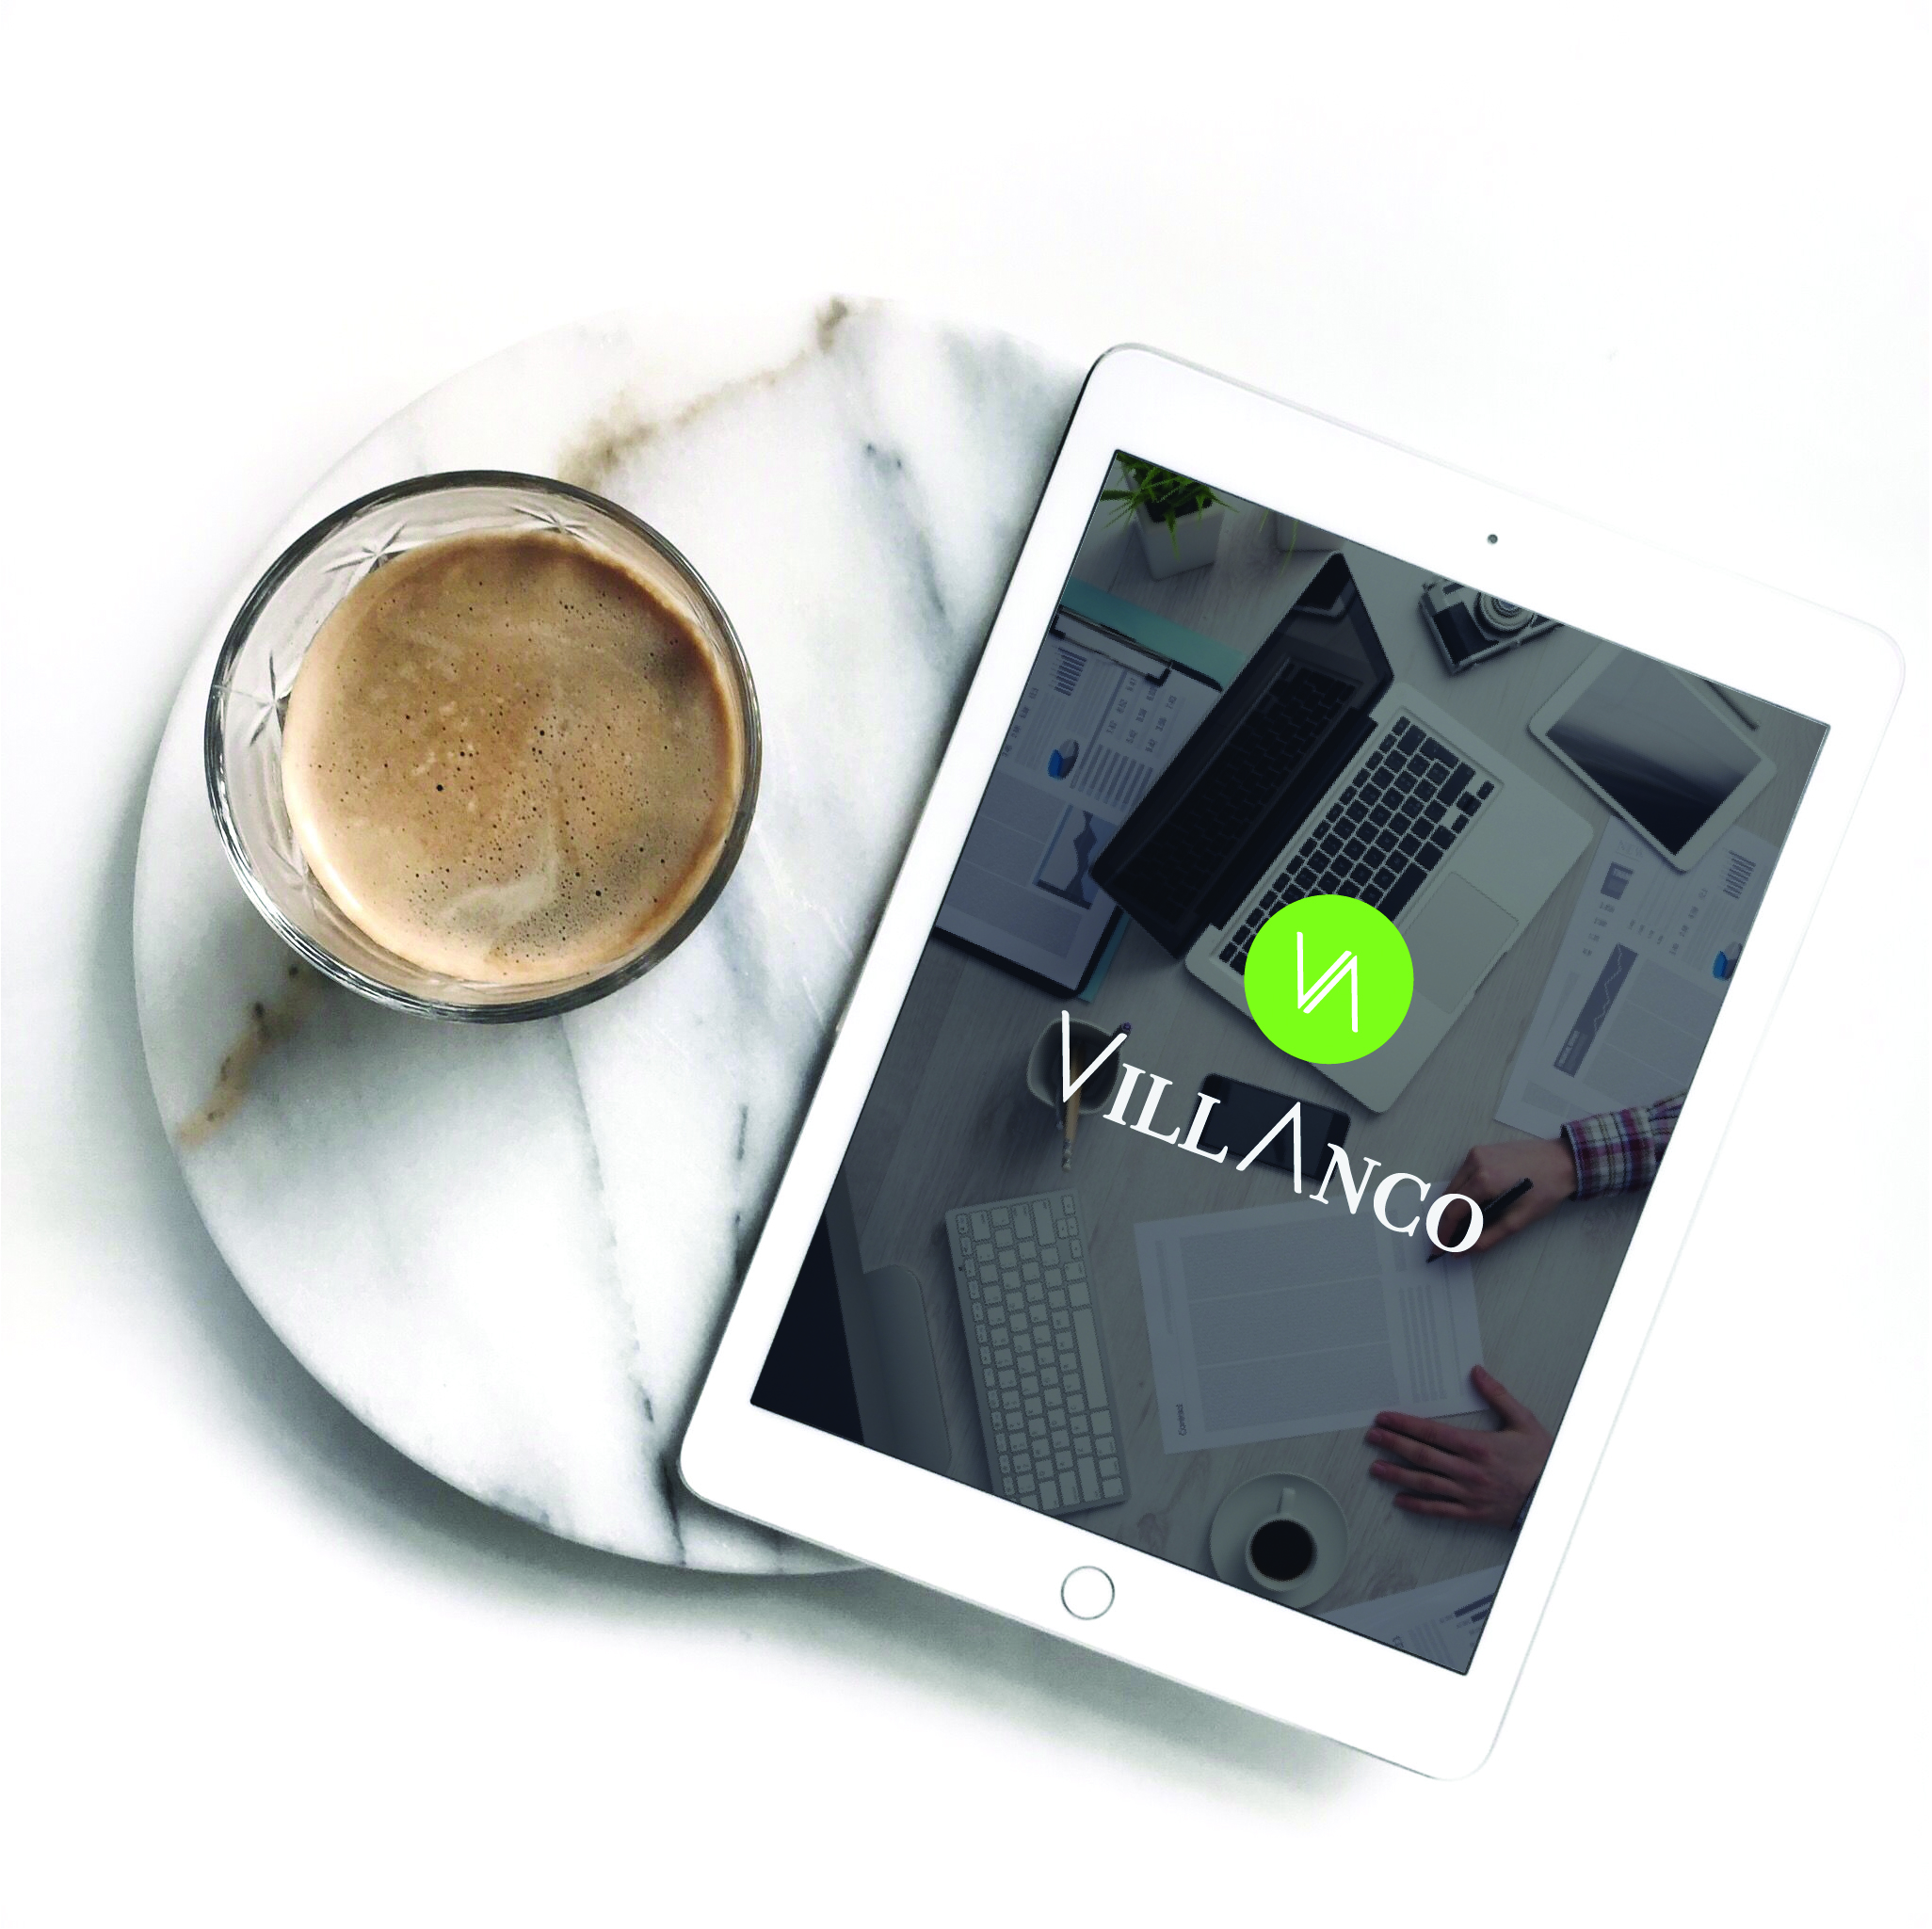 villanco ipad2-04.jpg